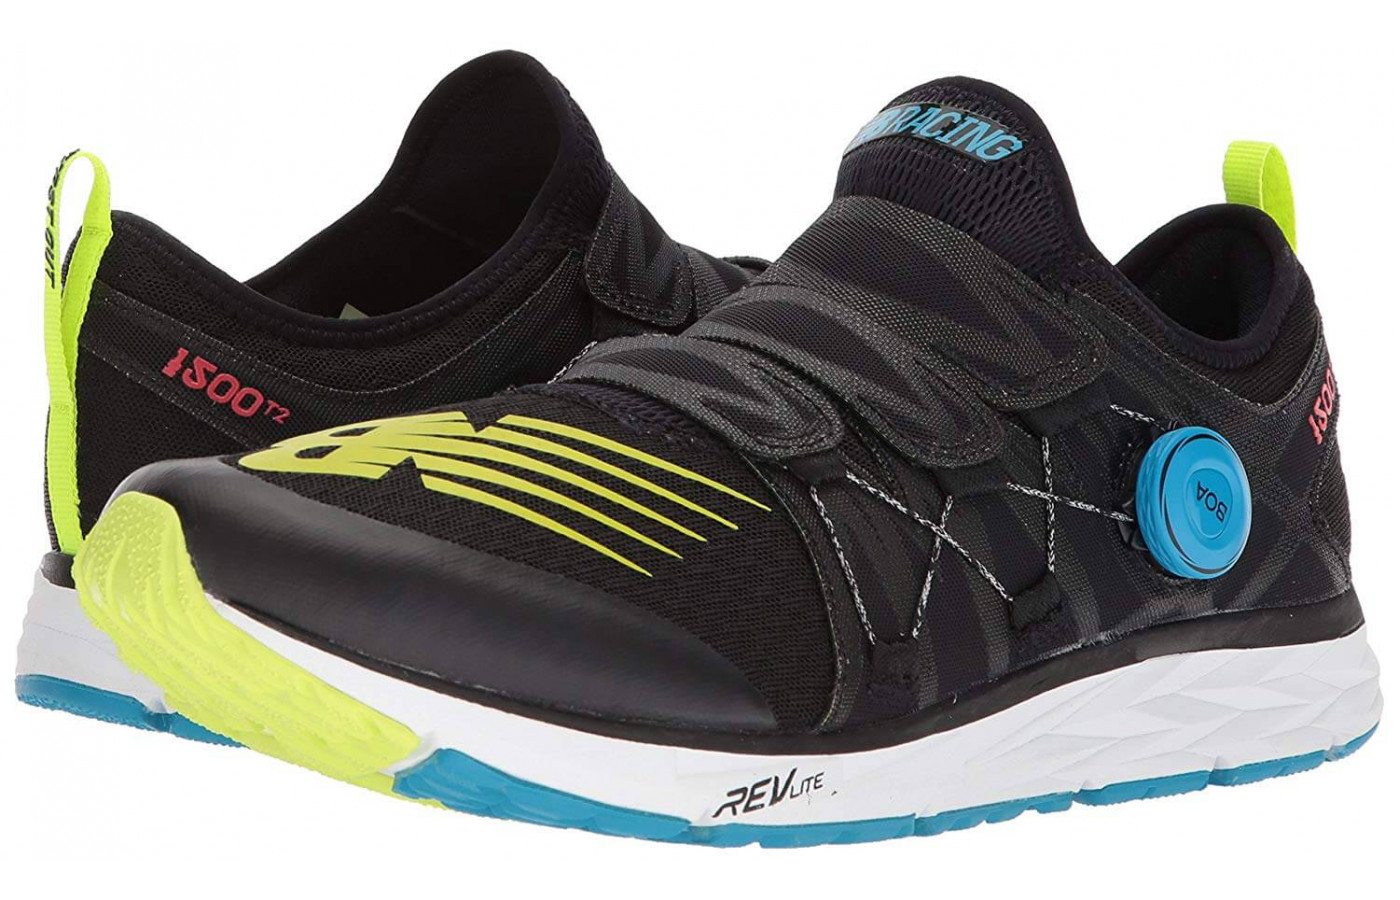 new product 8a61d 09b7b New Balance 1500 T2 Fully Reviewed for Quality